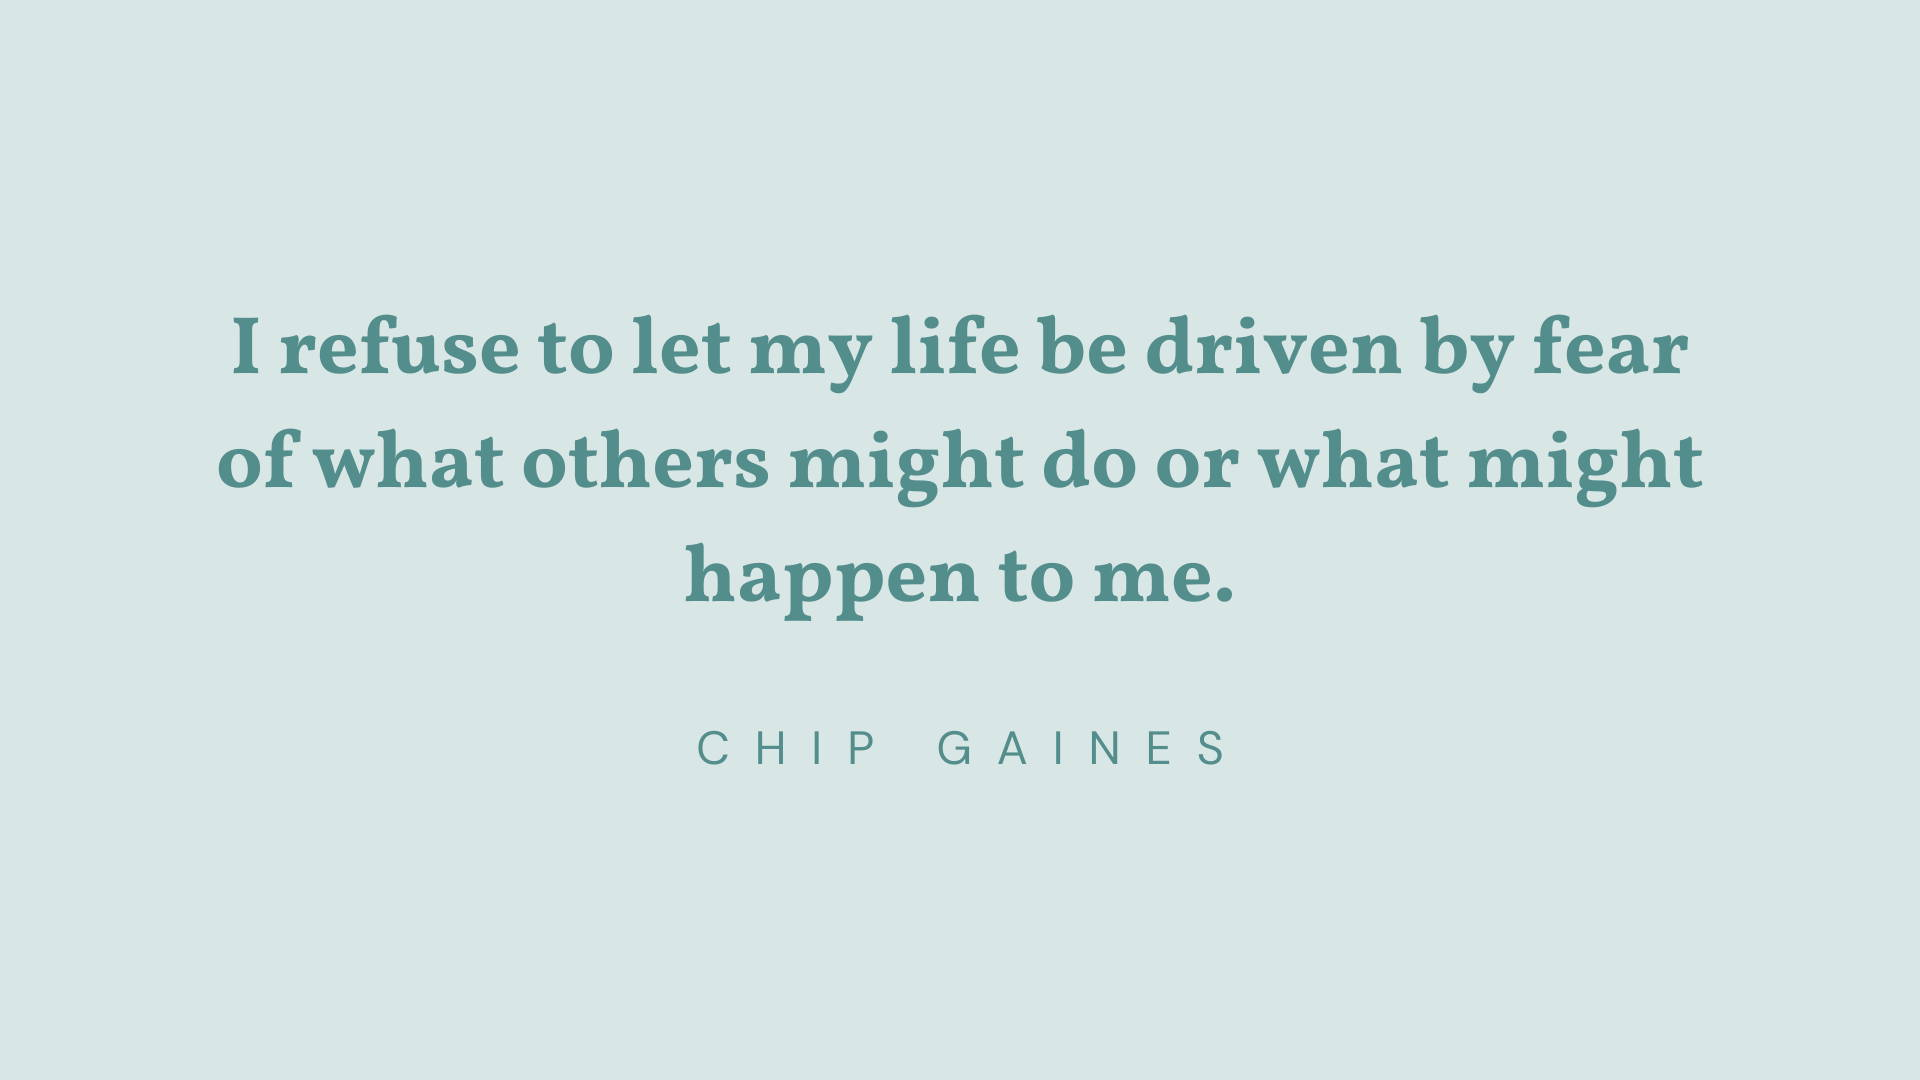 chip gaines quote about fearlessness